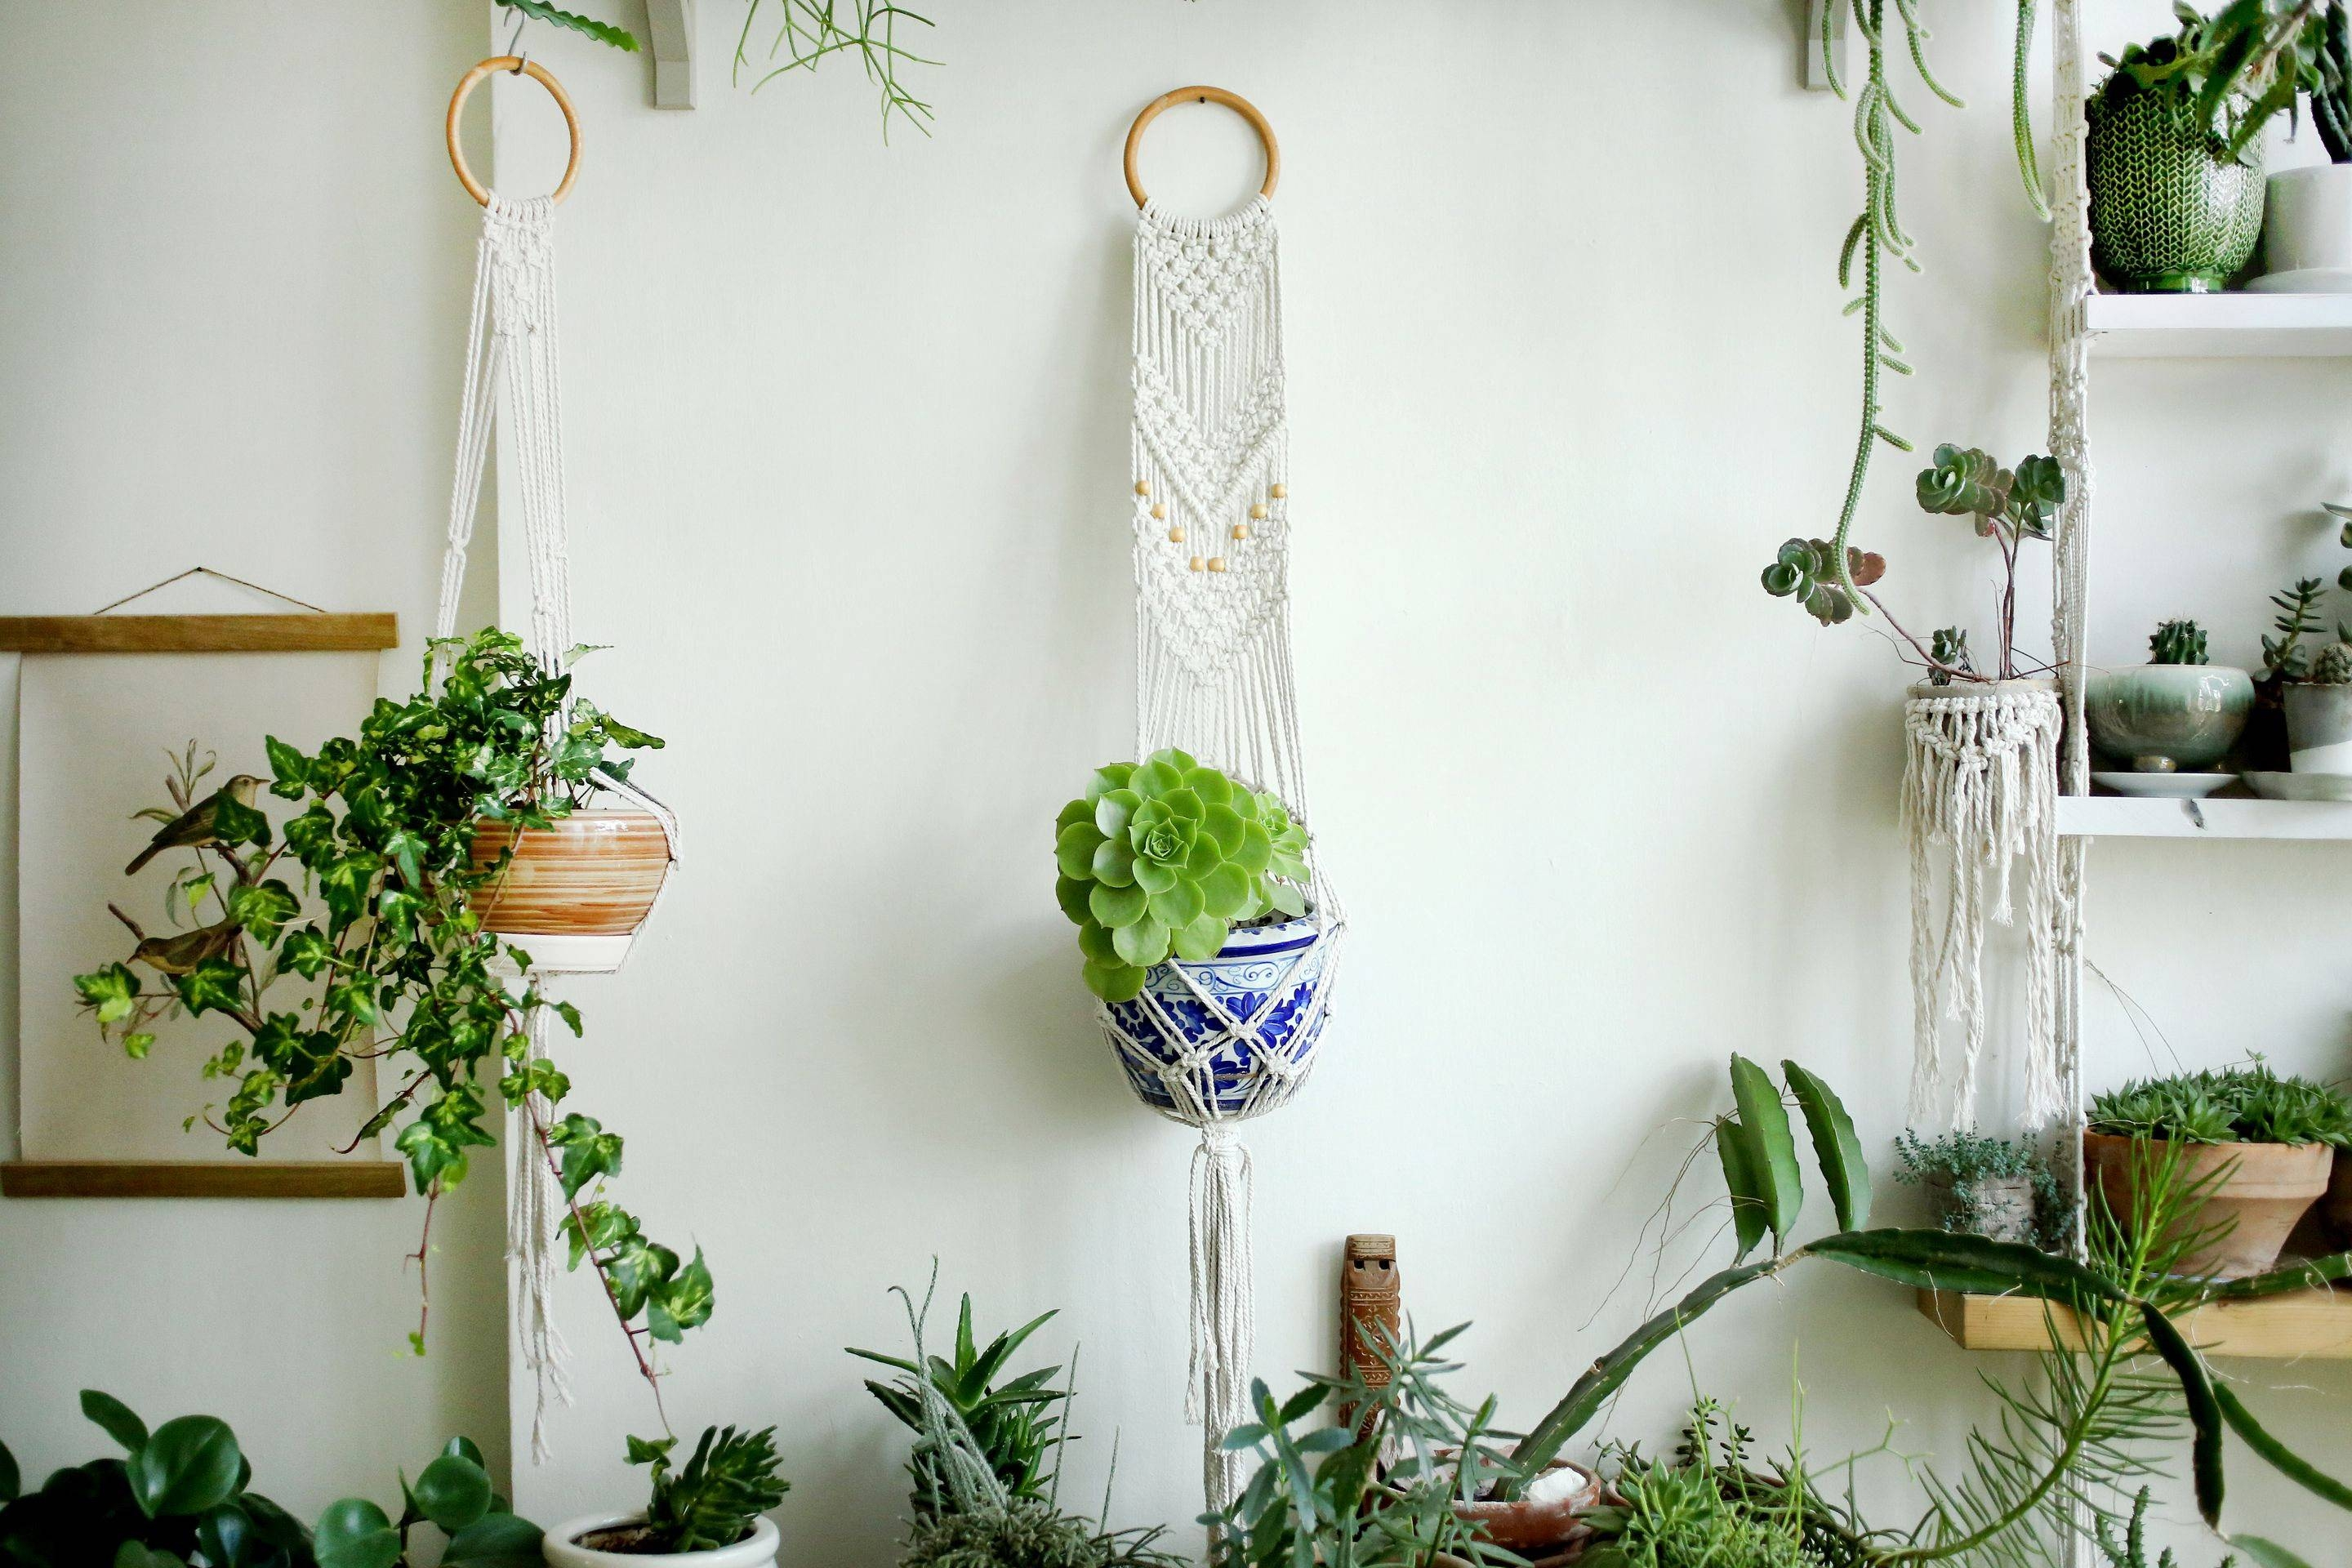 Macrame Plant Holder Hanging Planter Macrame Plant Hange In Current Floral & Plant Wall Art (View 19 of 25)